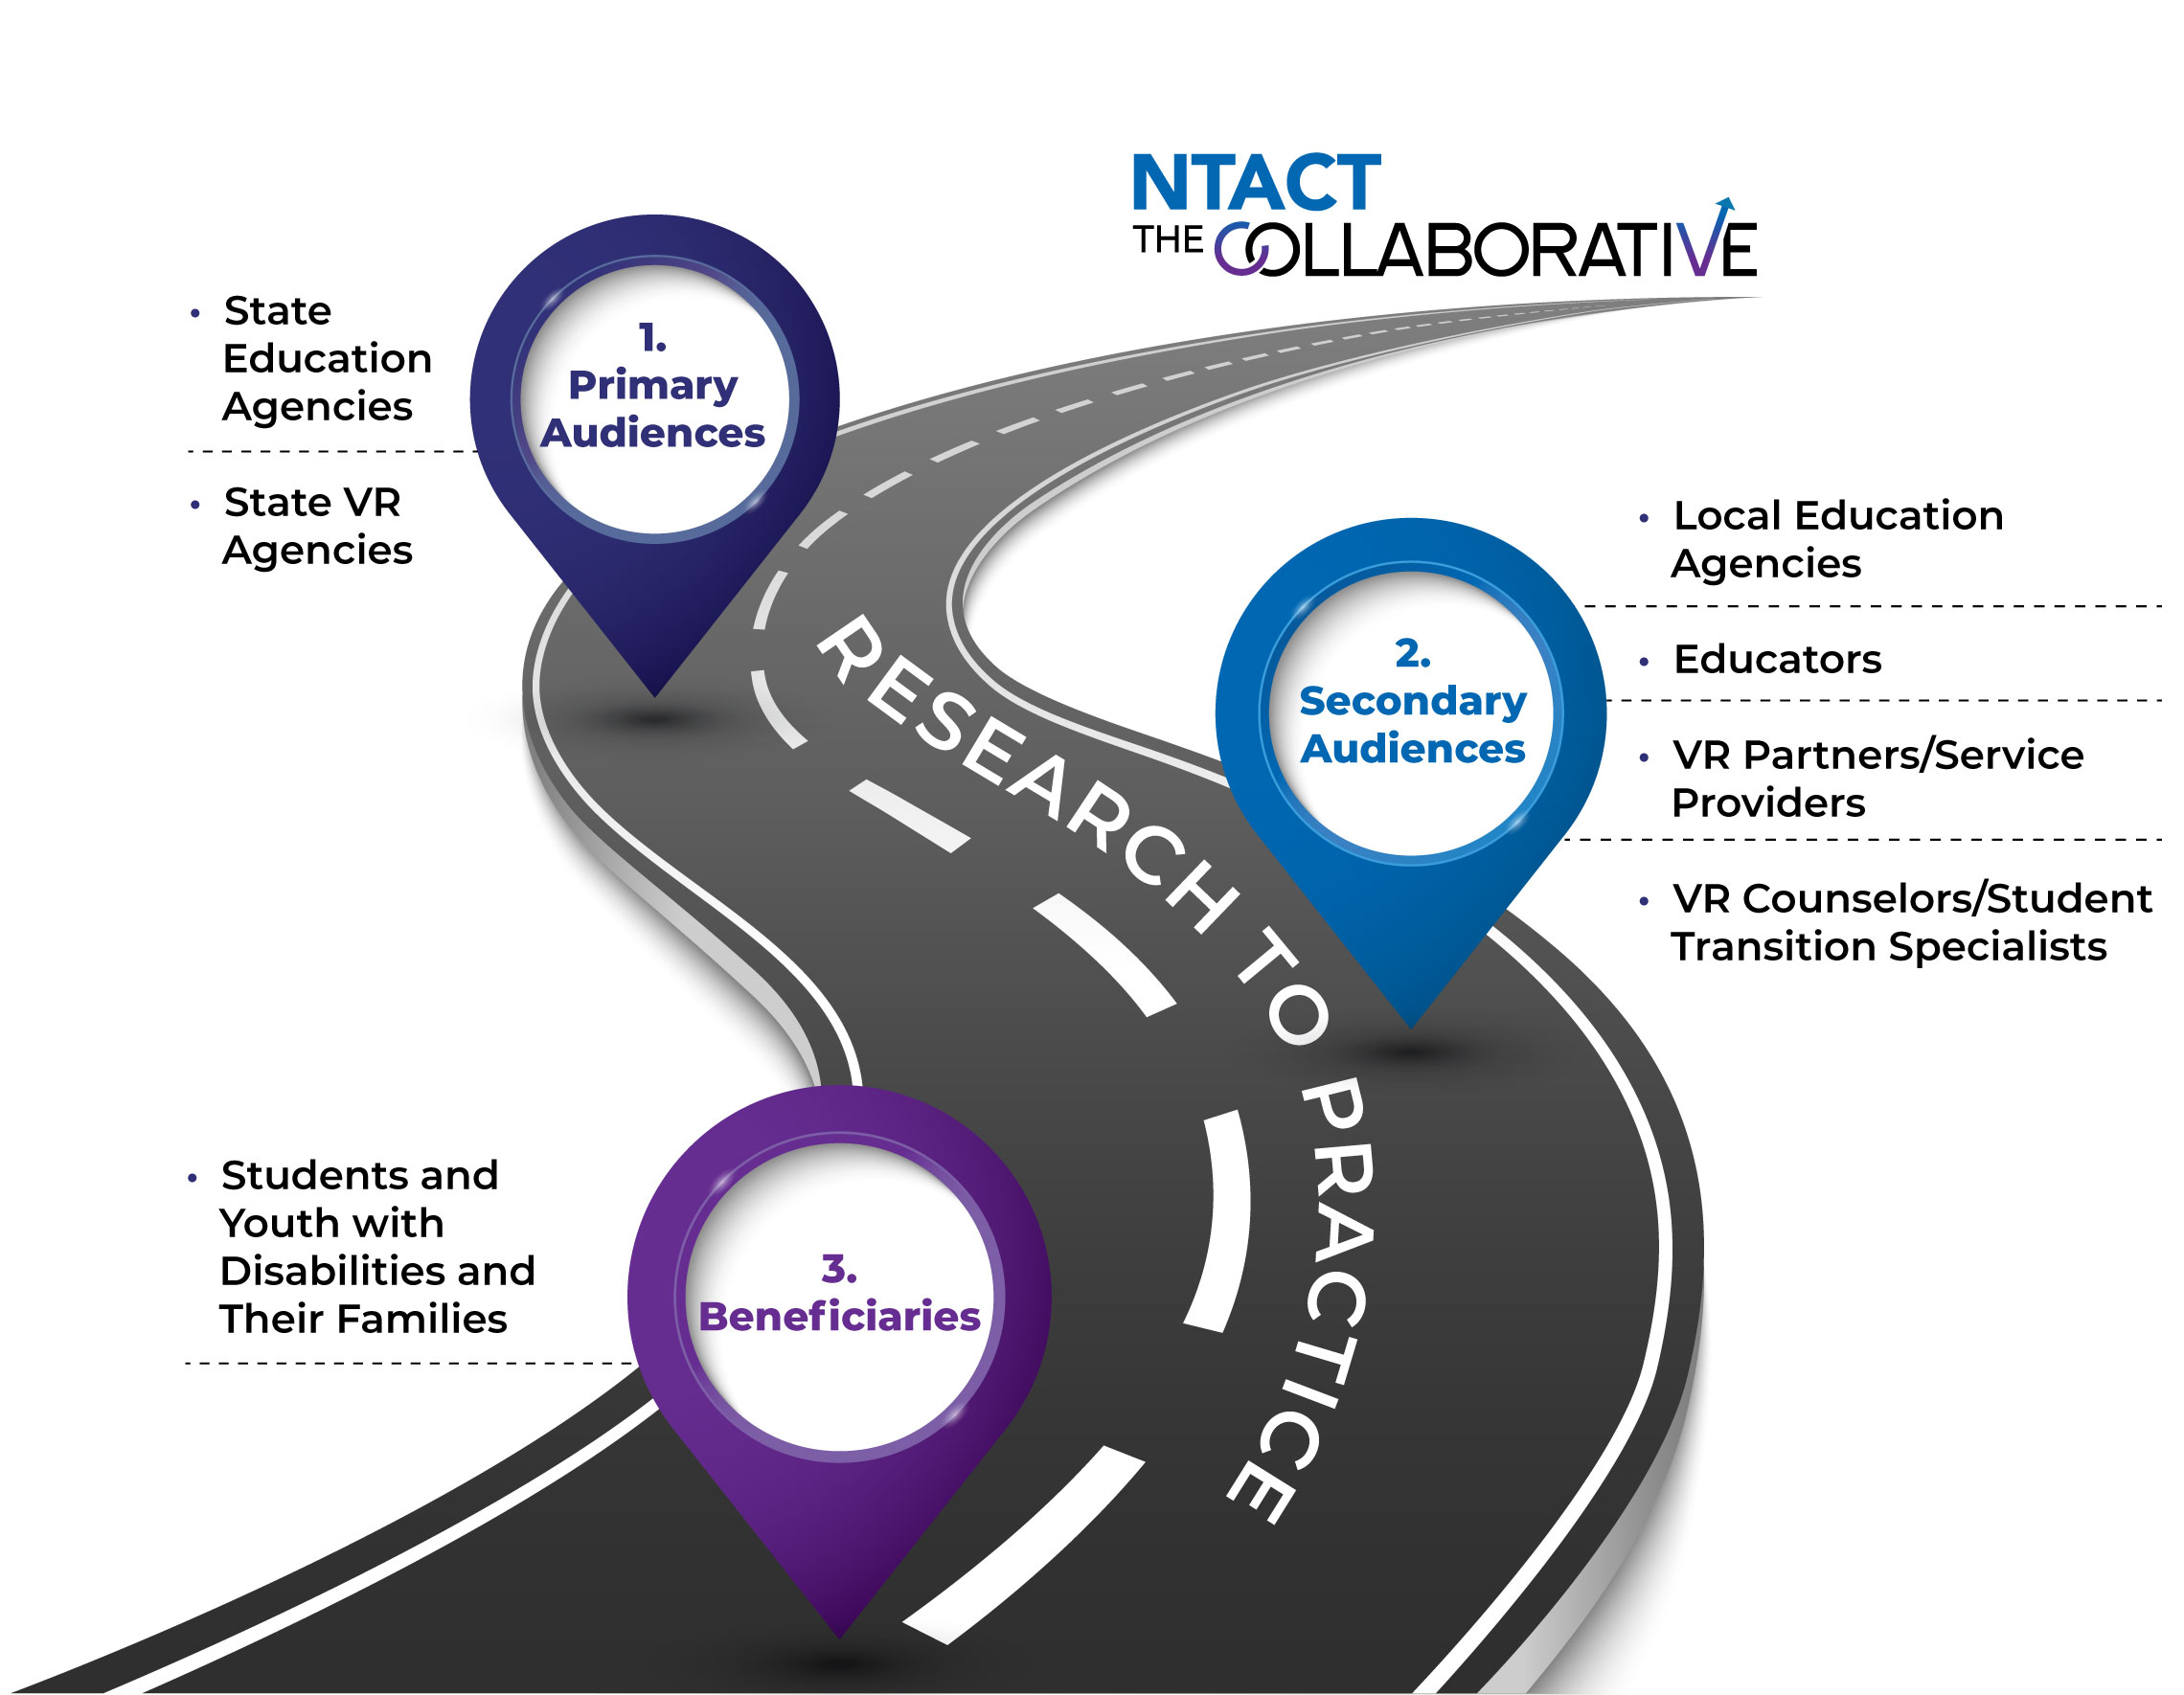 """This graphic illustrates four levels of """"research to practice"""" information flow:  NTACT:C appears at the top of a image of a winding road.  A second level, or """"stop"""" on the road, shows NTACT:C's primary audiences: State Education Agencies and State VR agencies.  A third level, or """"stop on the road,"""" shows secondary audiences: Local Education Agencies, Educators, VR Partners/Service Providers and VR Counselors/Student Transition Specialists.  The fourth level, or """"stop on the road,"""" shows beneficiaries: Students and Youth with Disabilities and Their Families."""